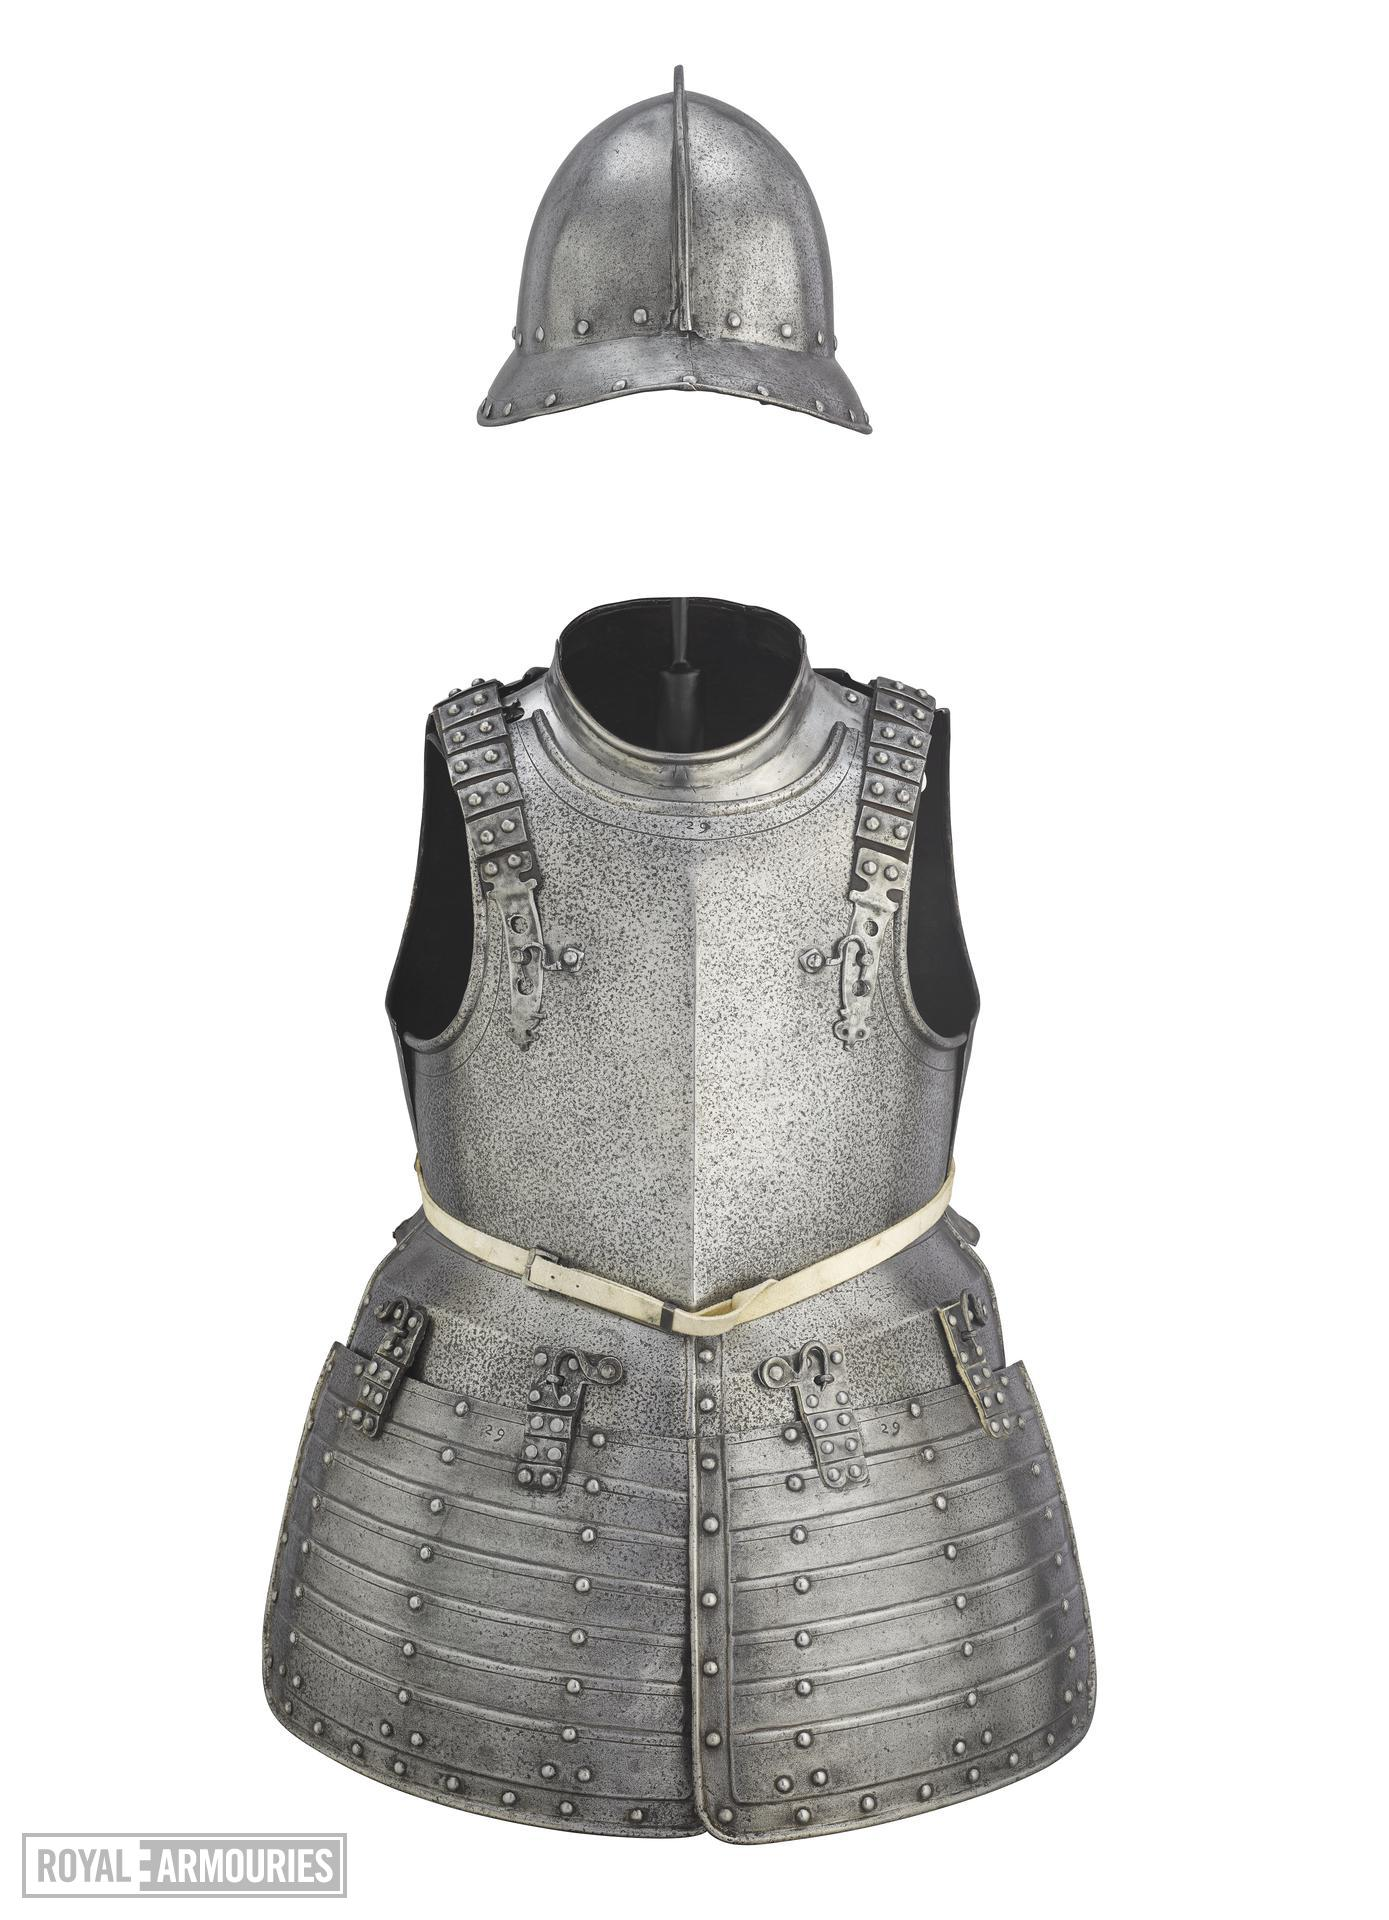 Pikeman armour featuring pot, breastplate, backplate and collar. II.165